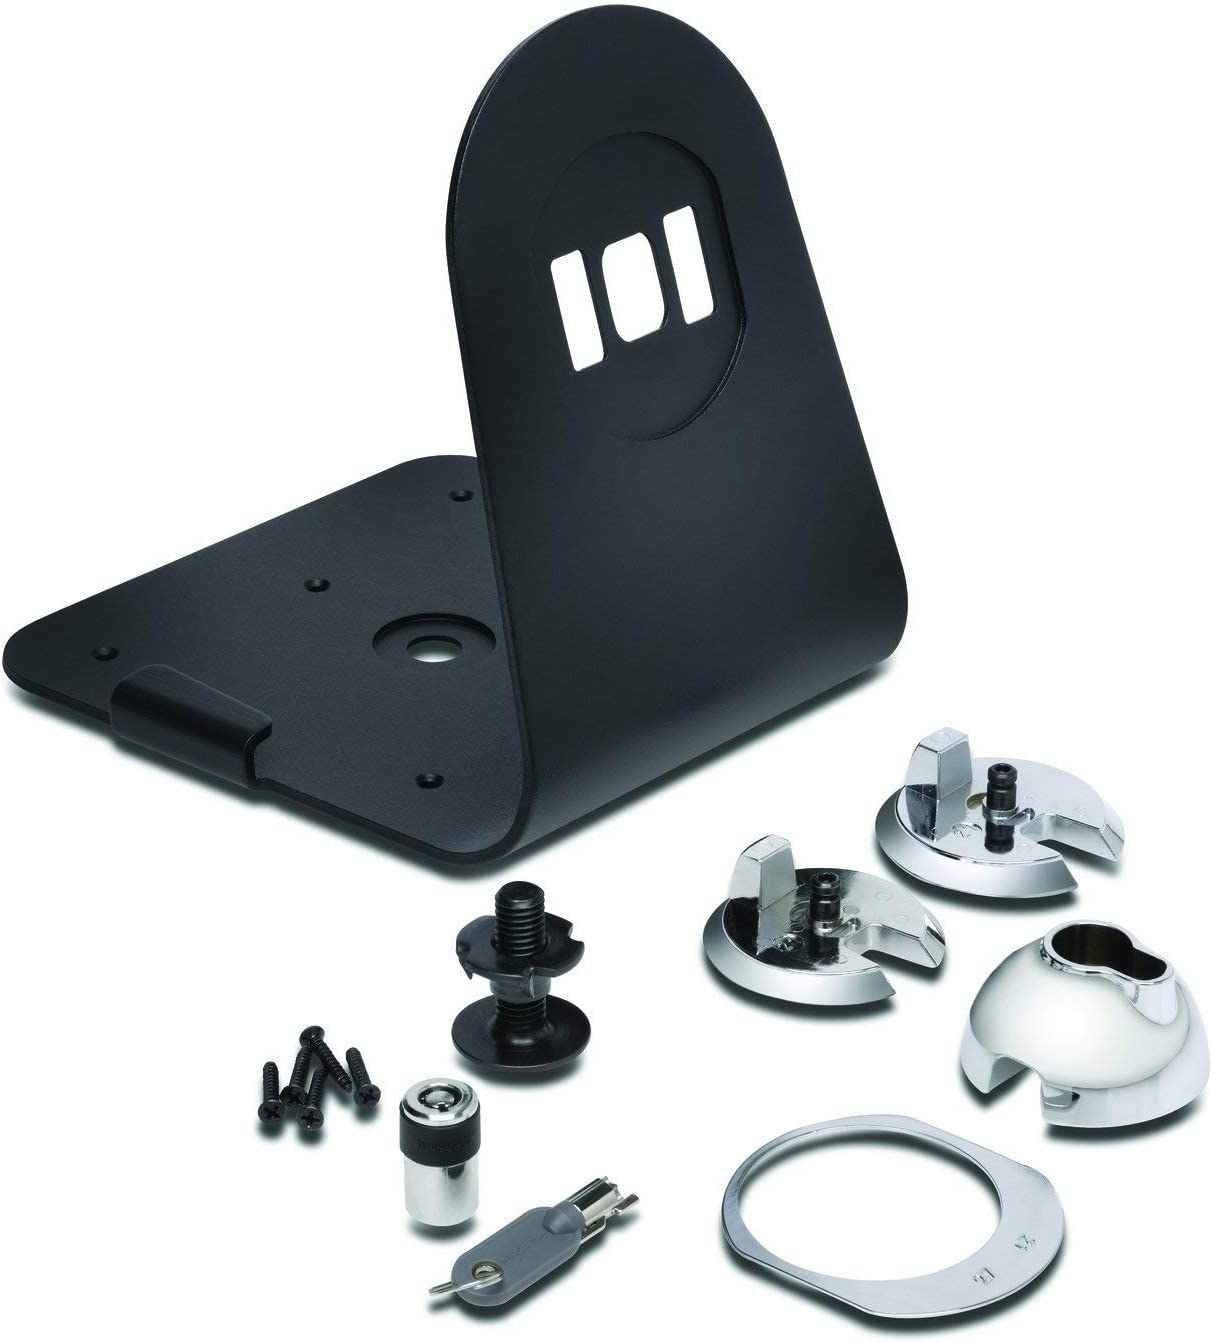 Kensington SafeStand Universal Keyed Locking Station for iMac (K67822WW)